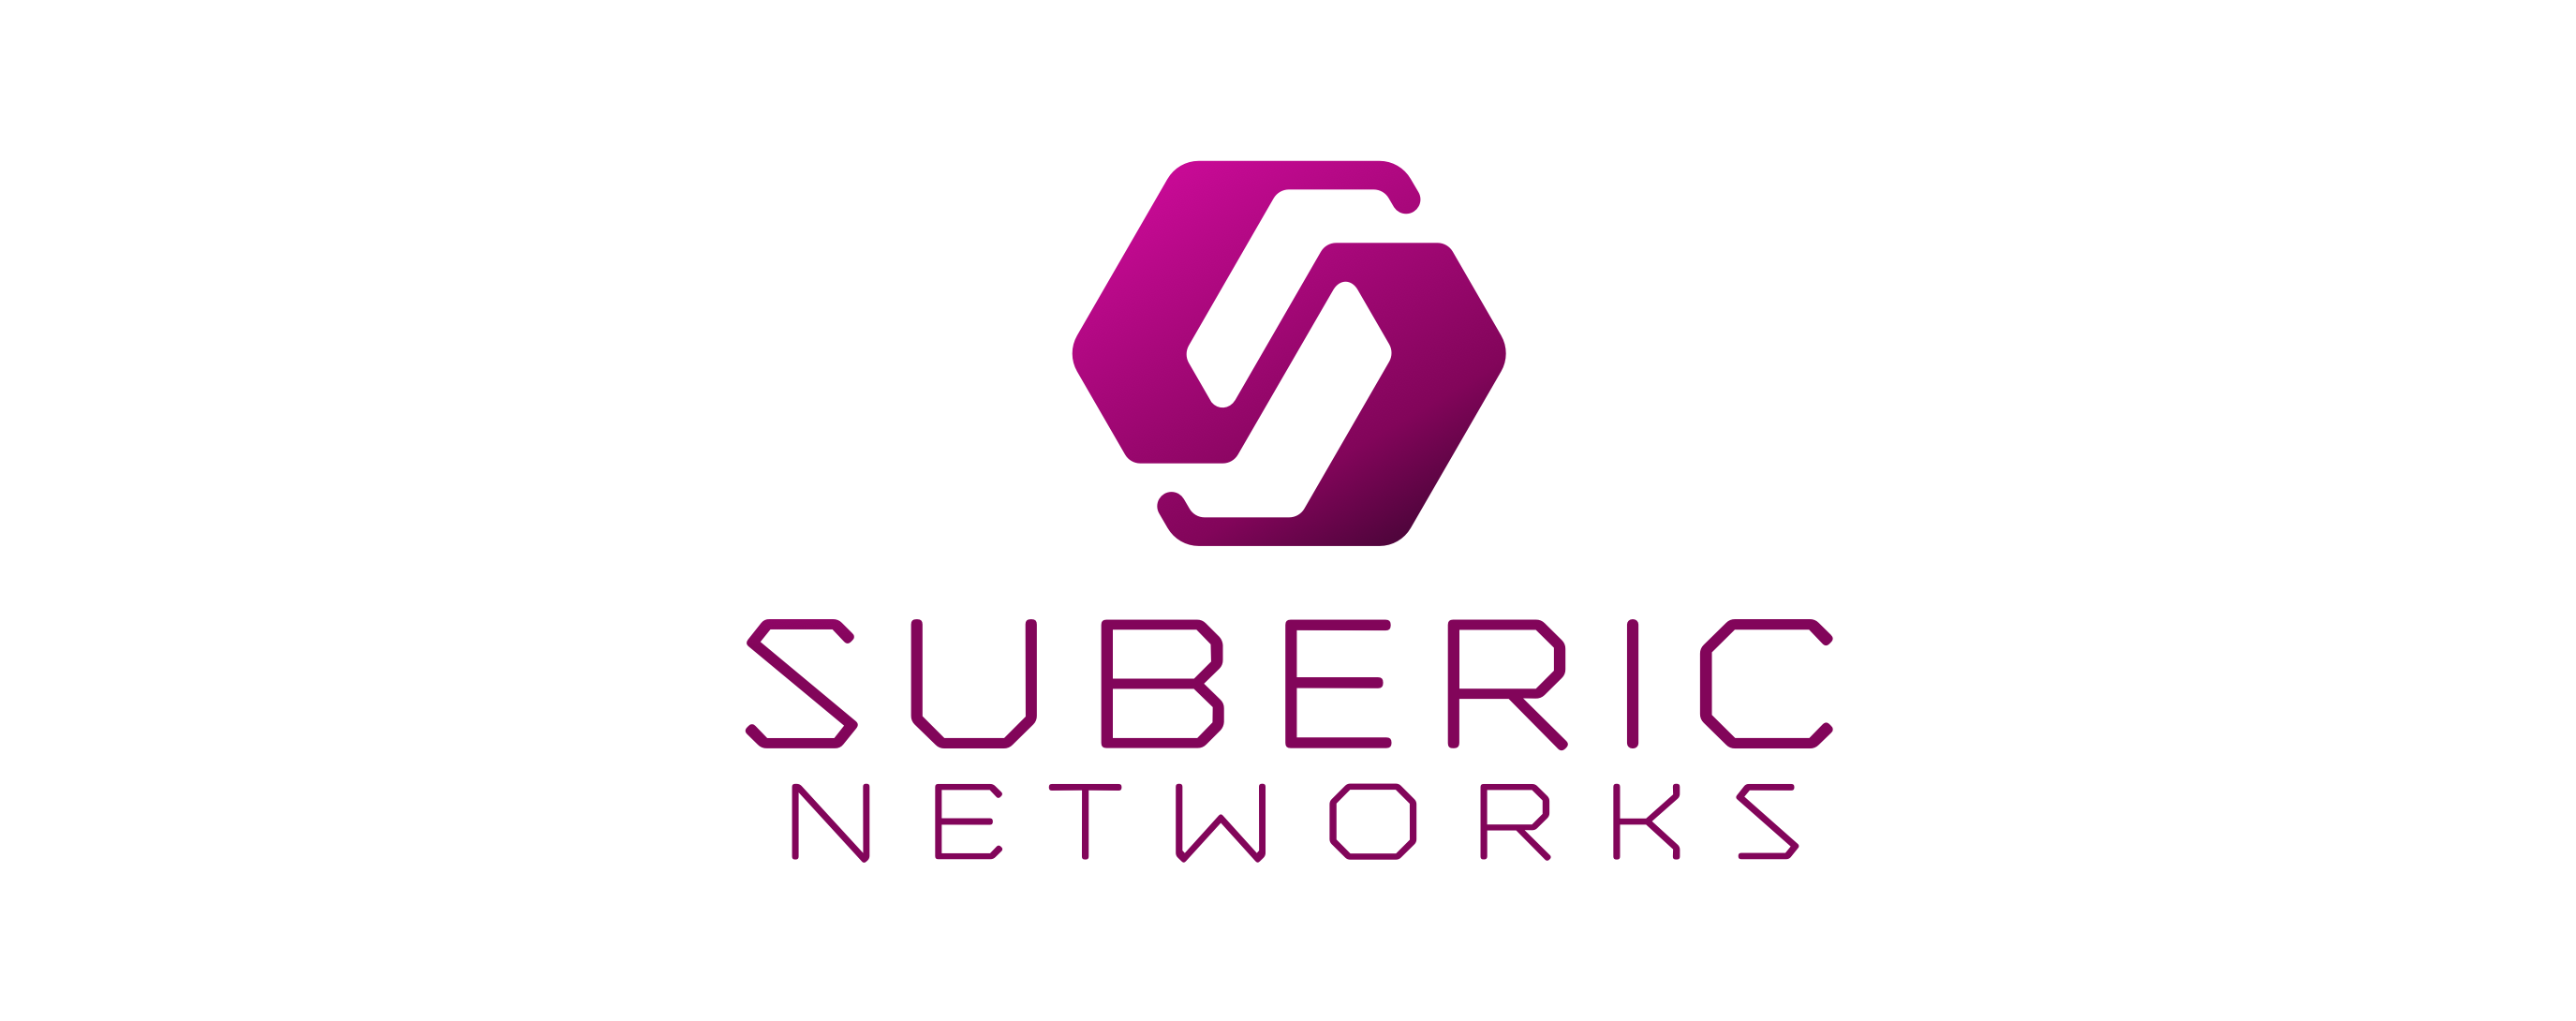 Suberic Networks Logo Vertical